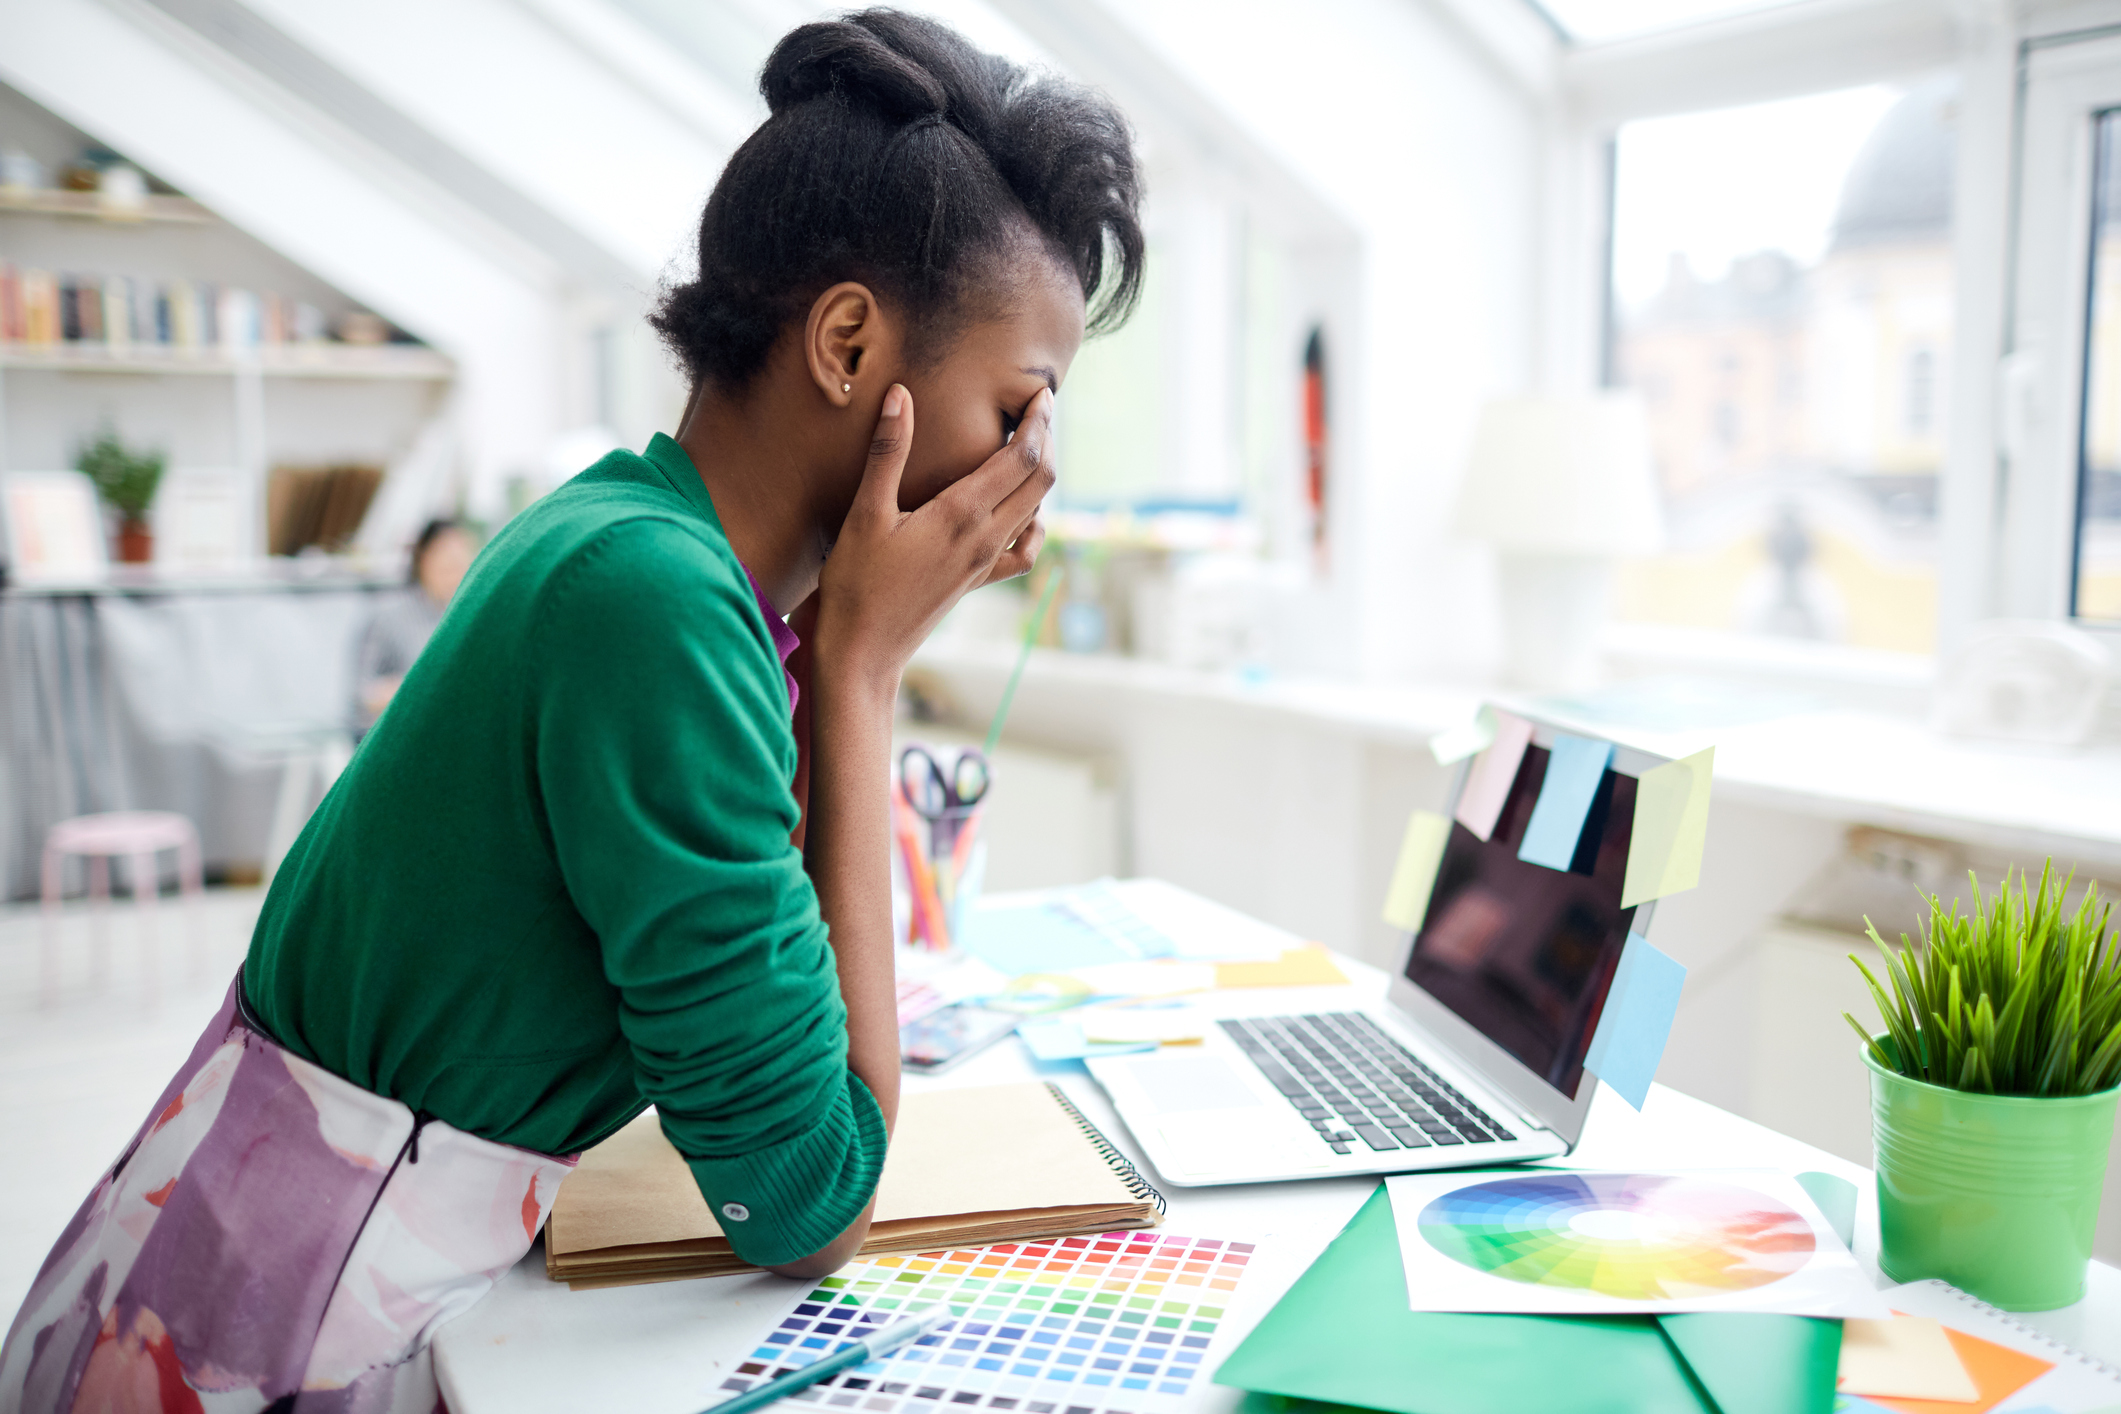 Stressed young woman sitting at a desk in front of laptop with her face in her hands